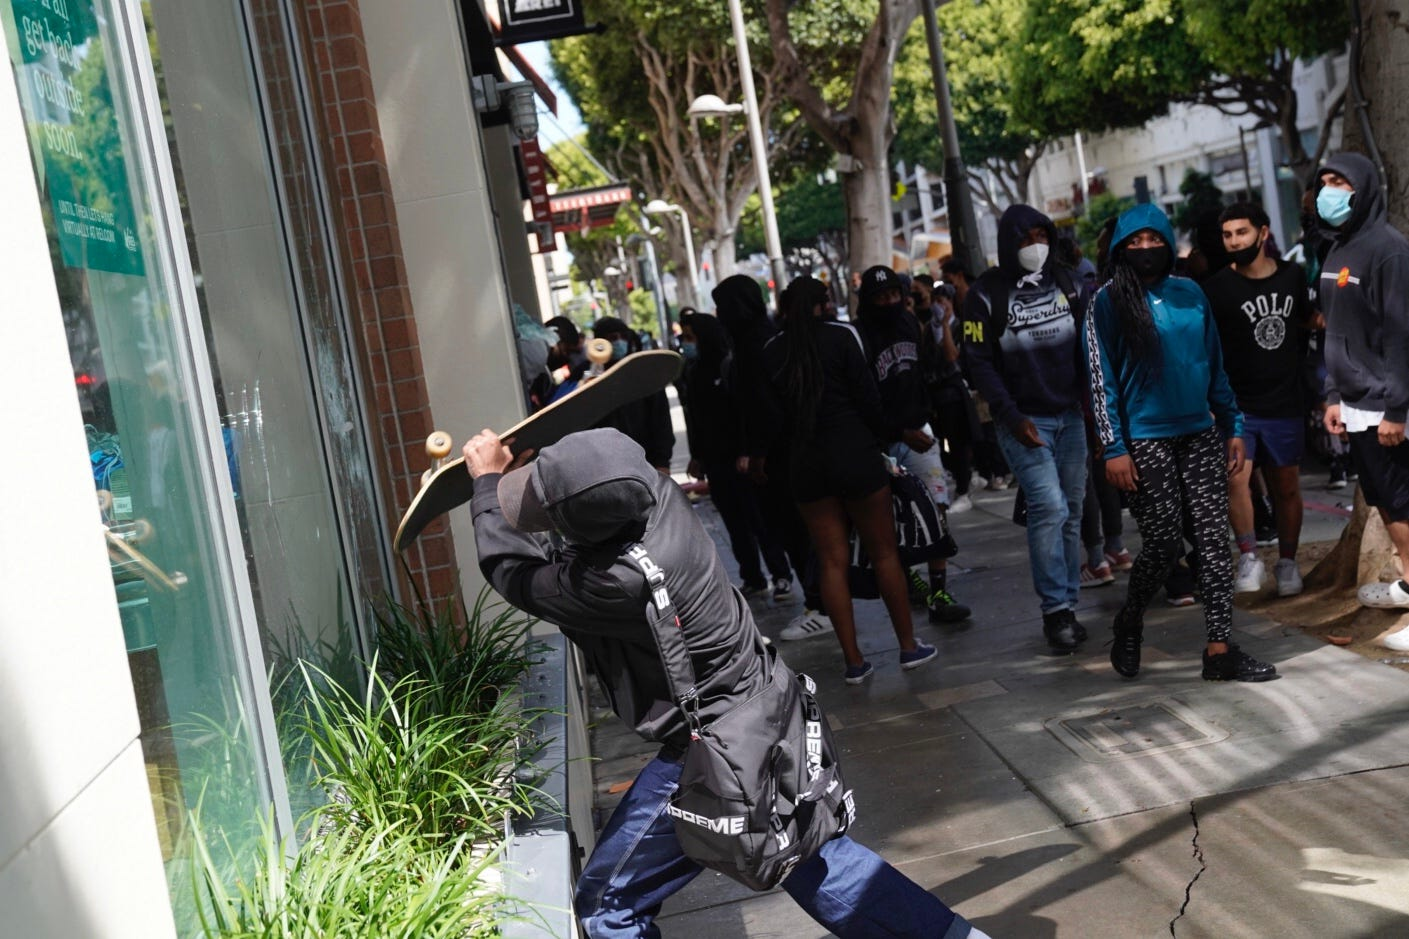 White supremacist group poses as Antifa online, call for violence